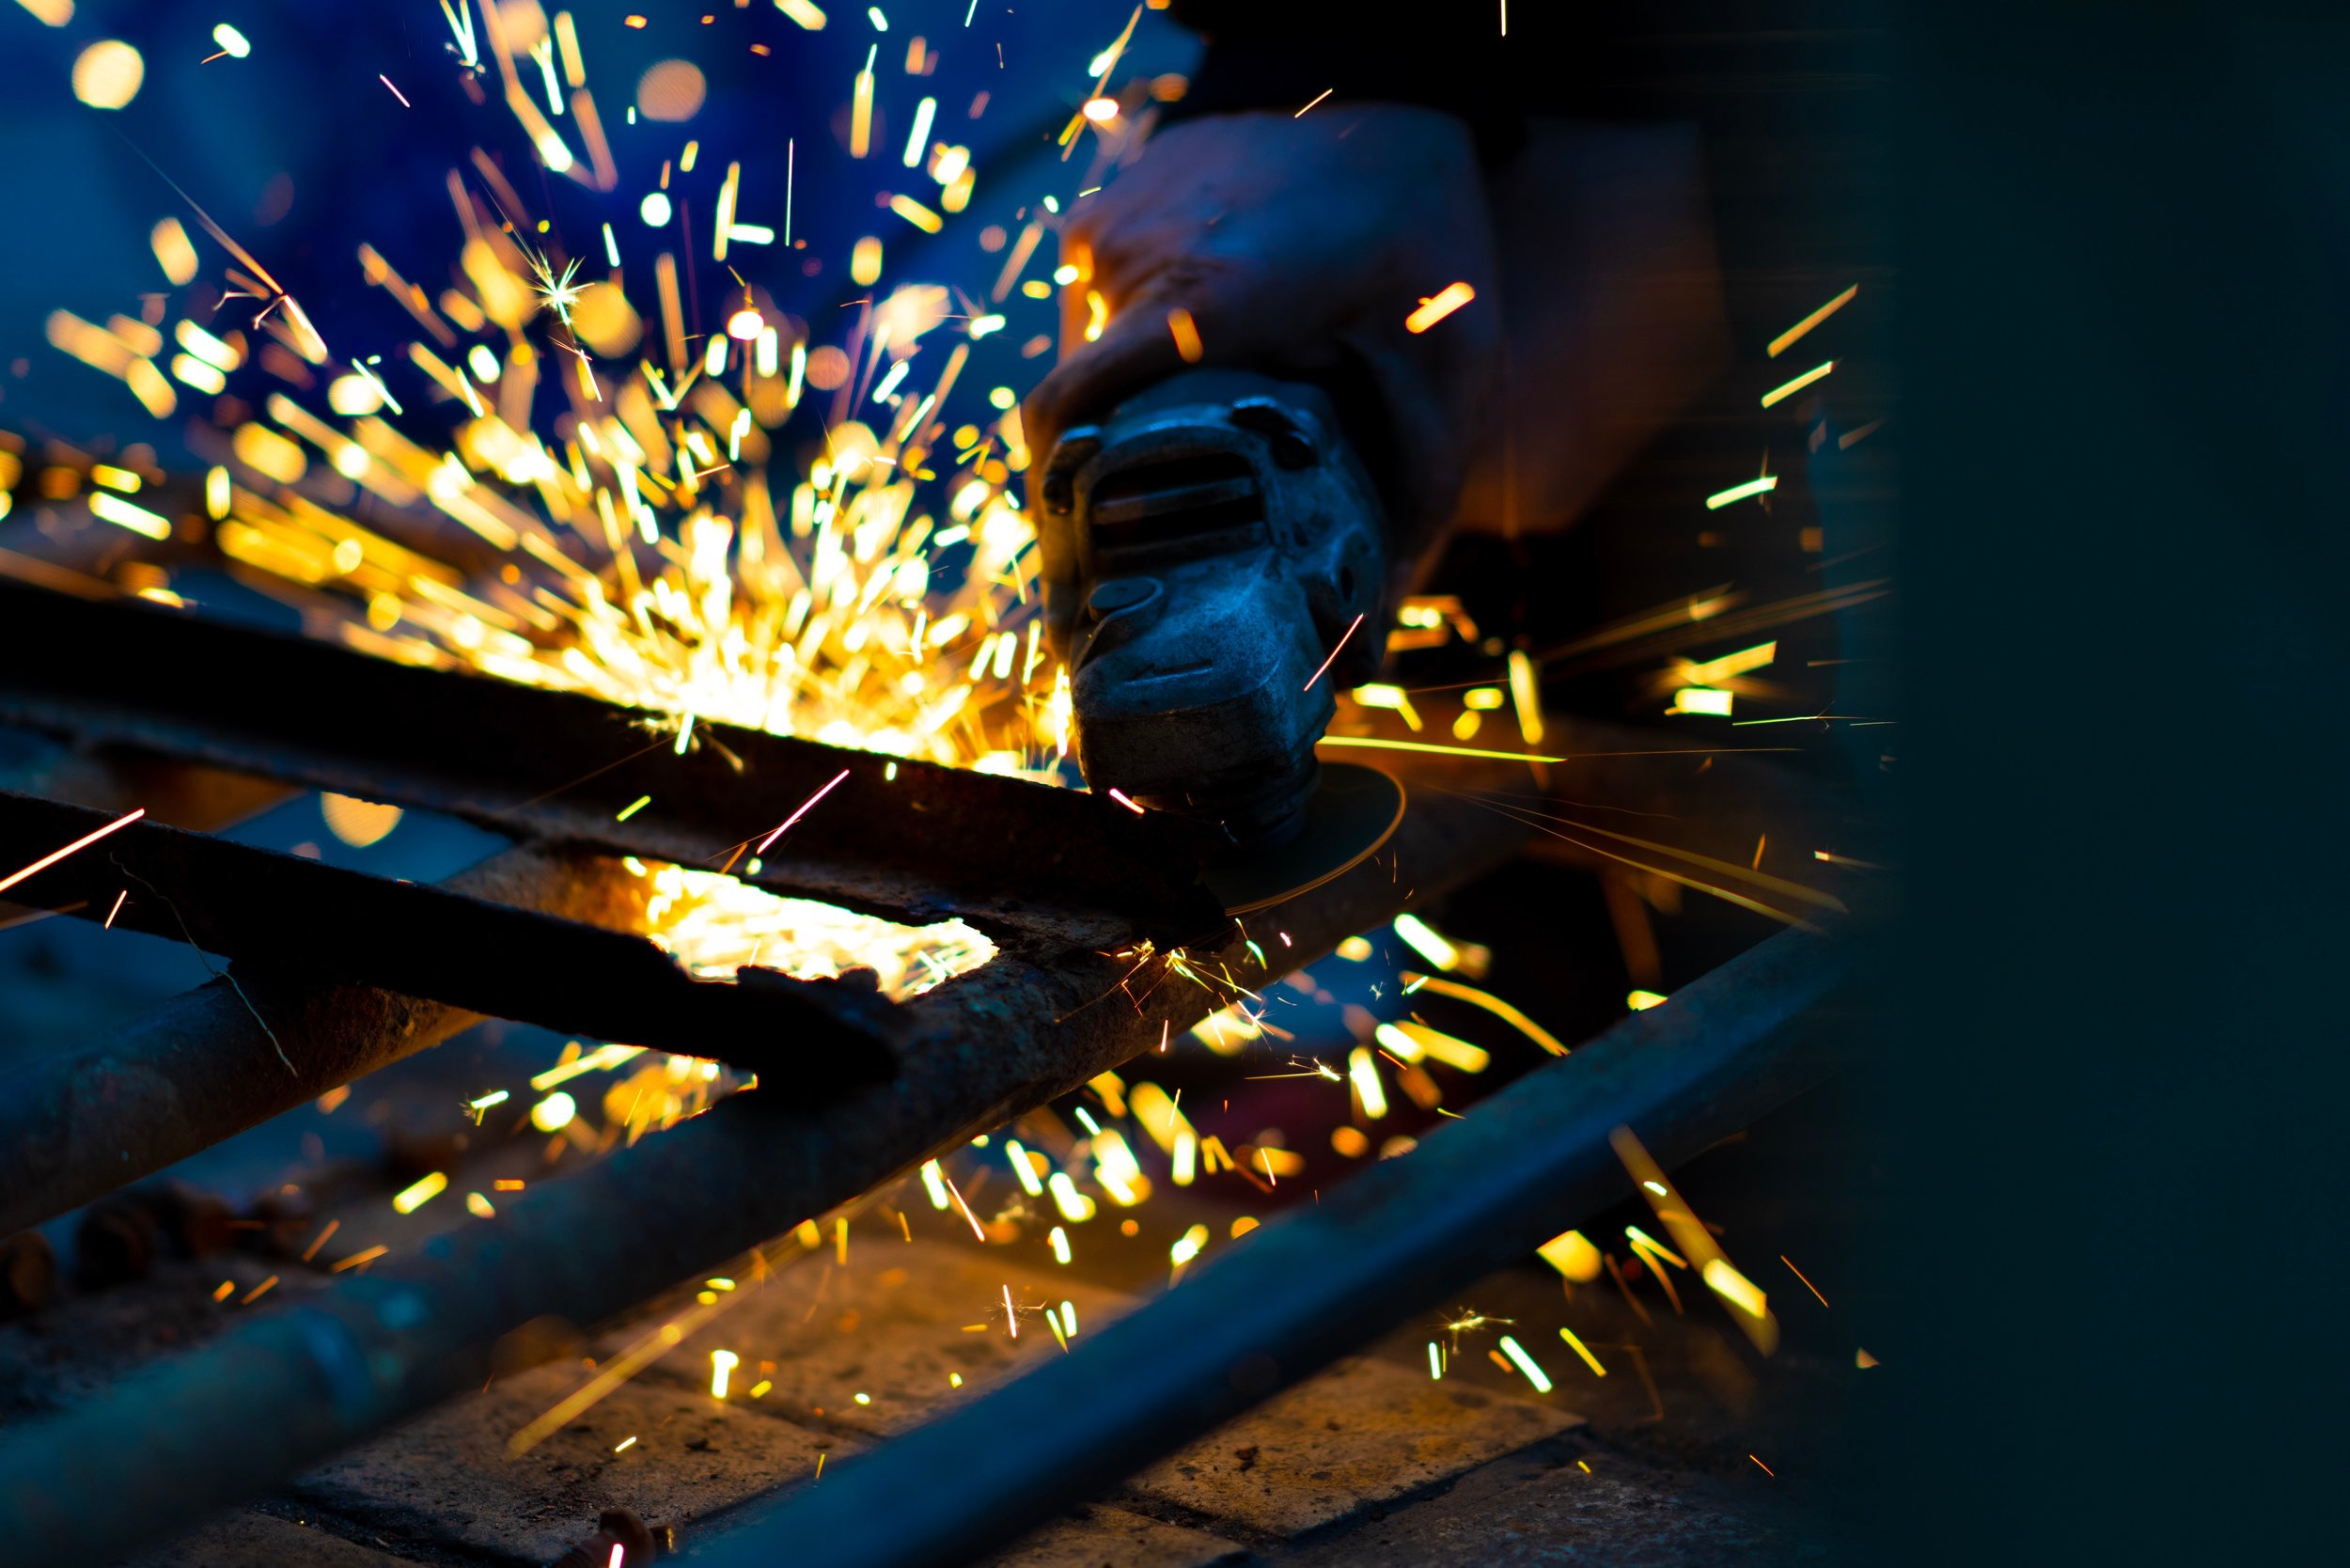 A close up shot of a person working on welding a piece of metal. Many sparks flying off the hot tool